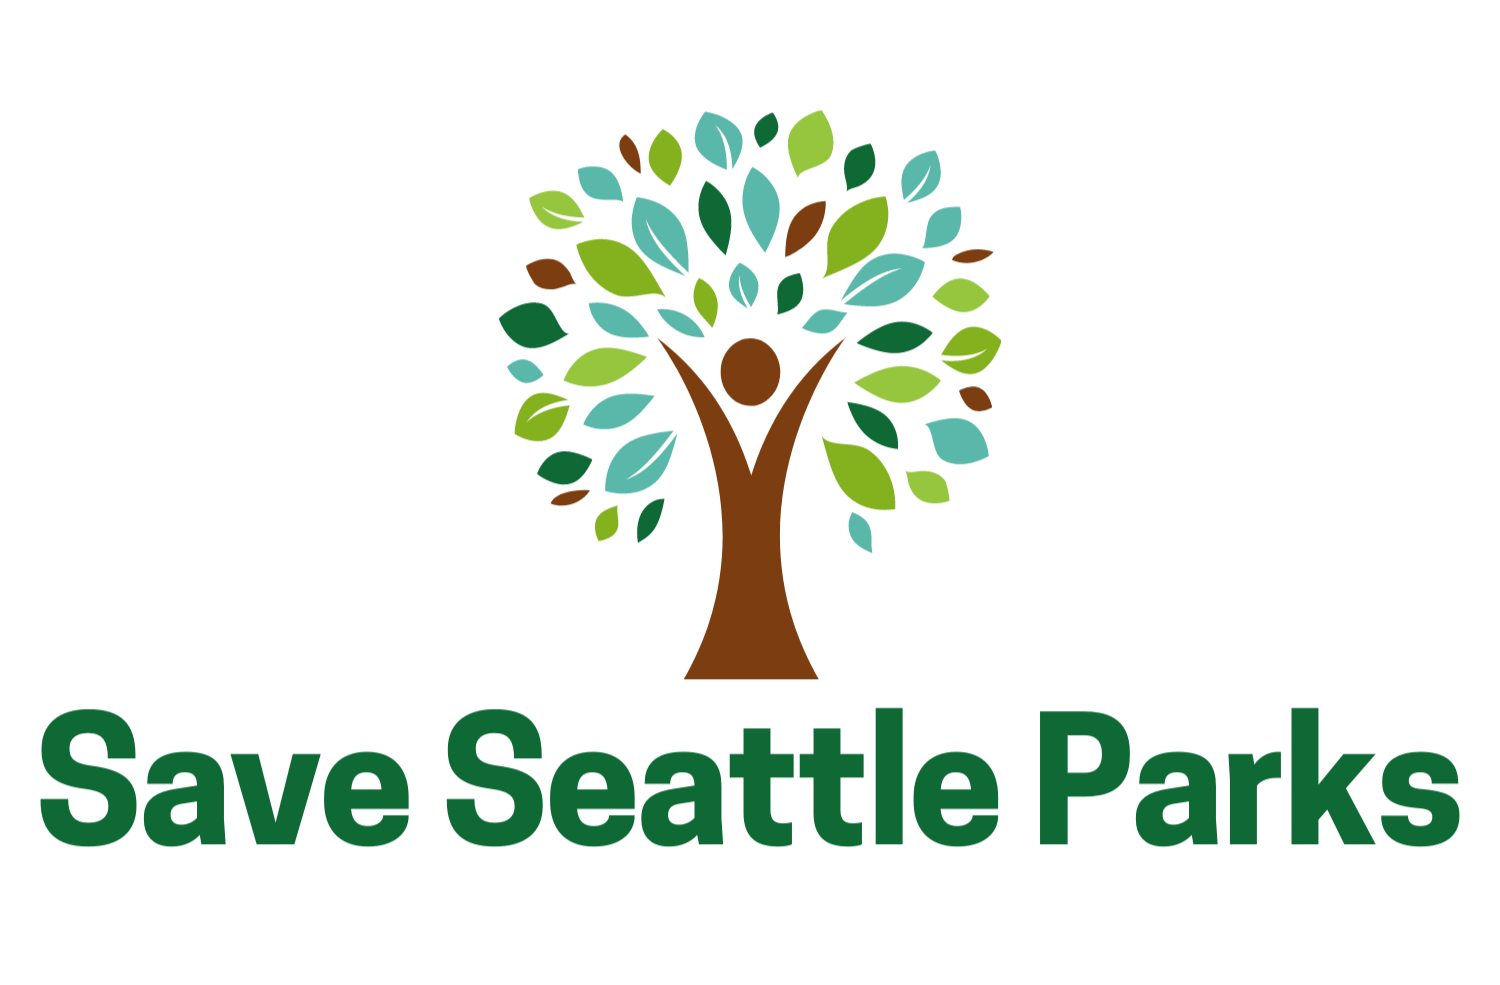 Save Seattle parks